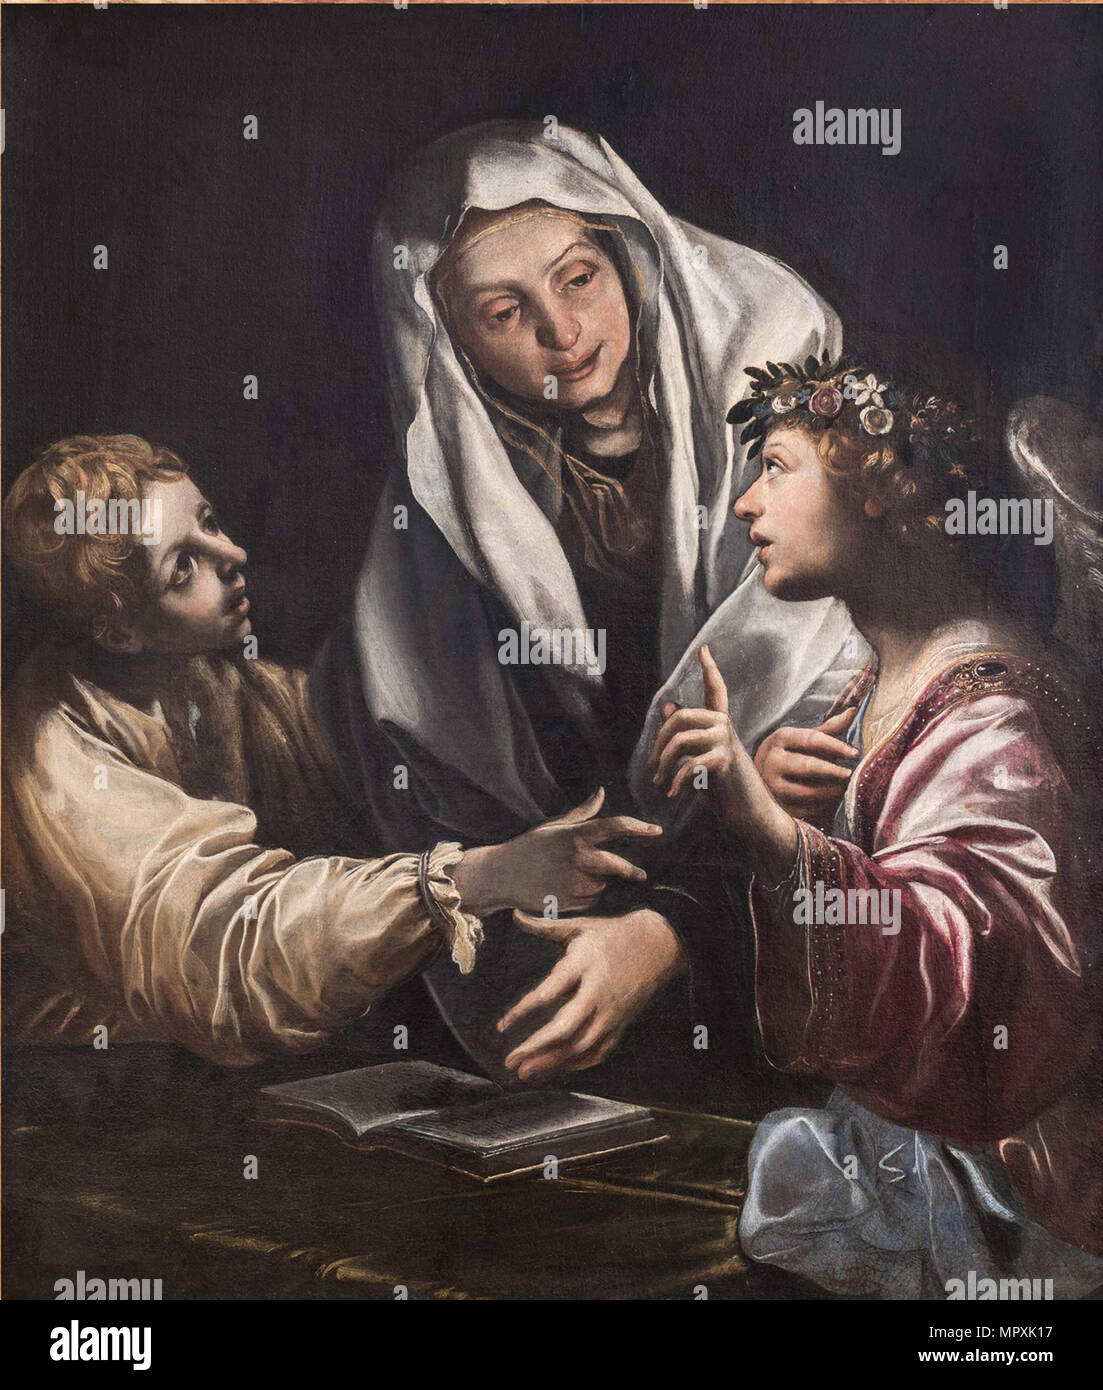 The Vision of Saint Frances of Rome. - Stock Image